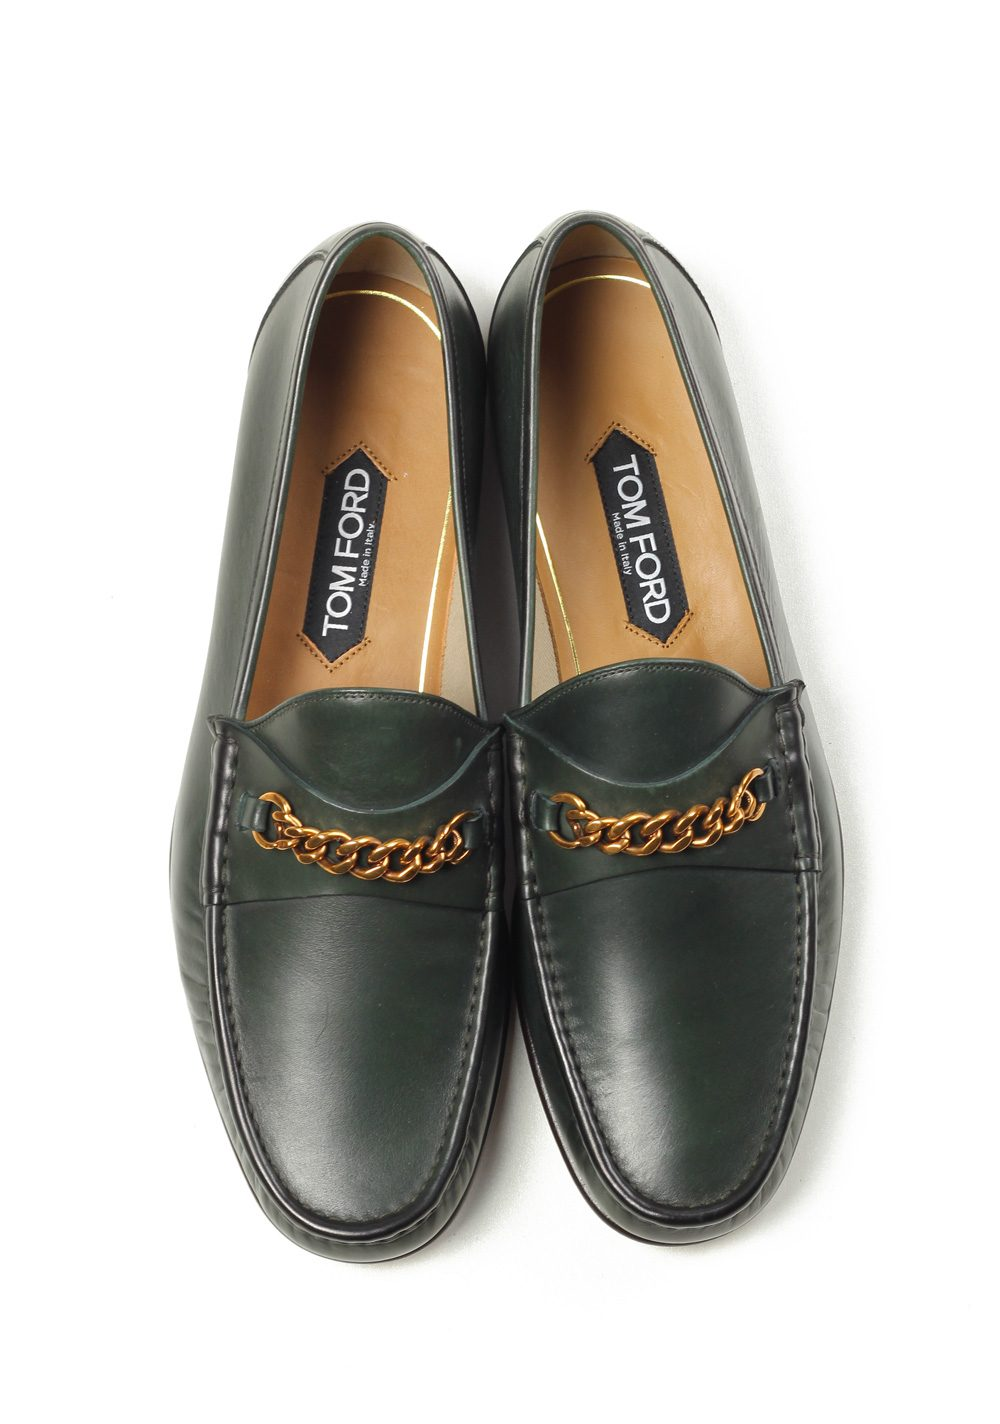 14916ff913b TOM FORD York Green Leather Chain Loafers Shoes Size 8